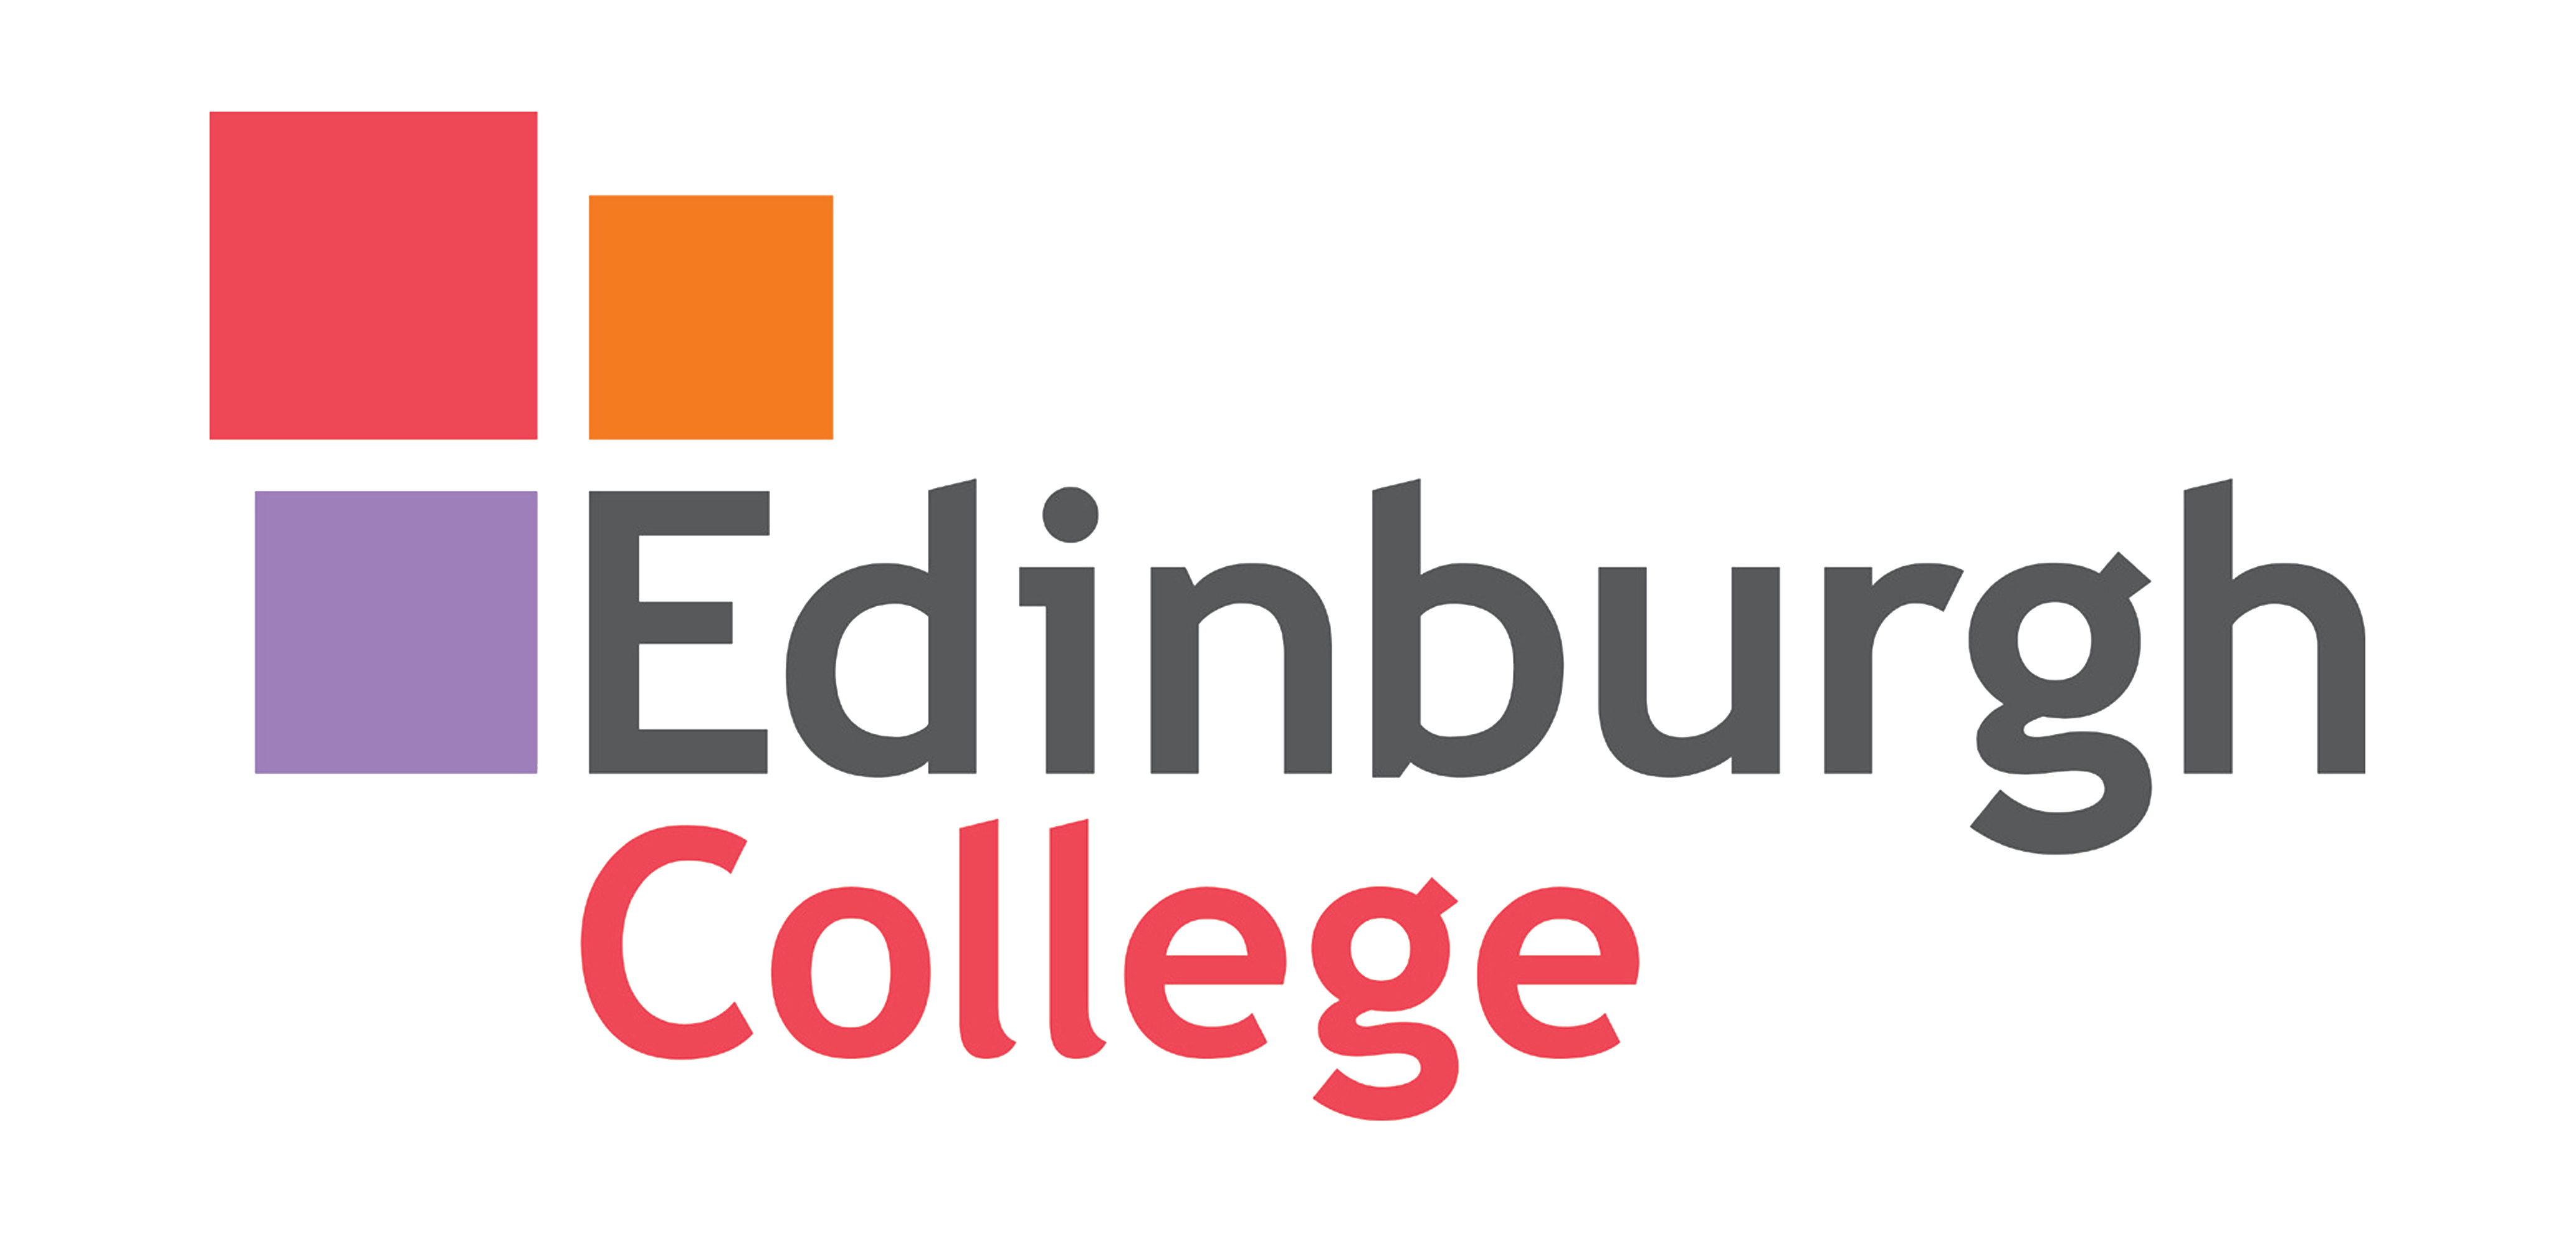 Visit Edinburgh College website